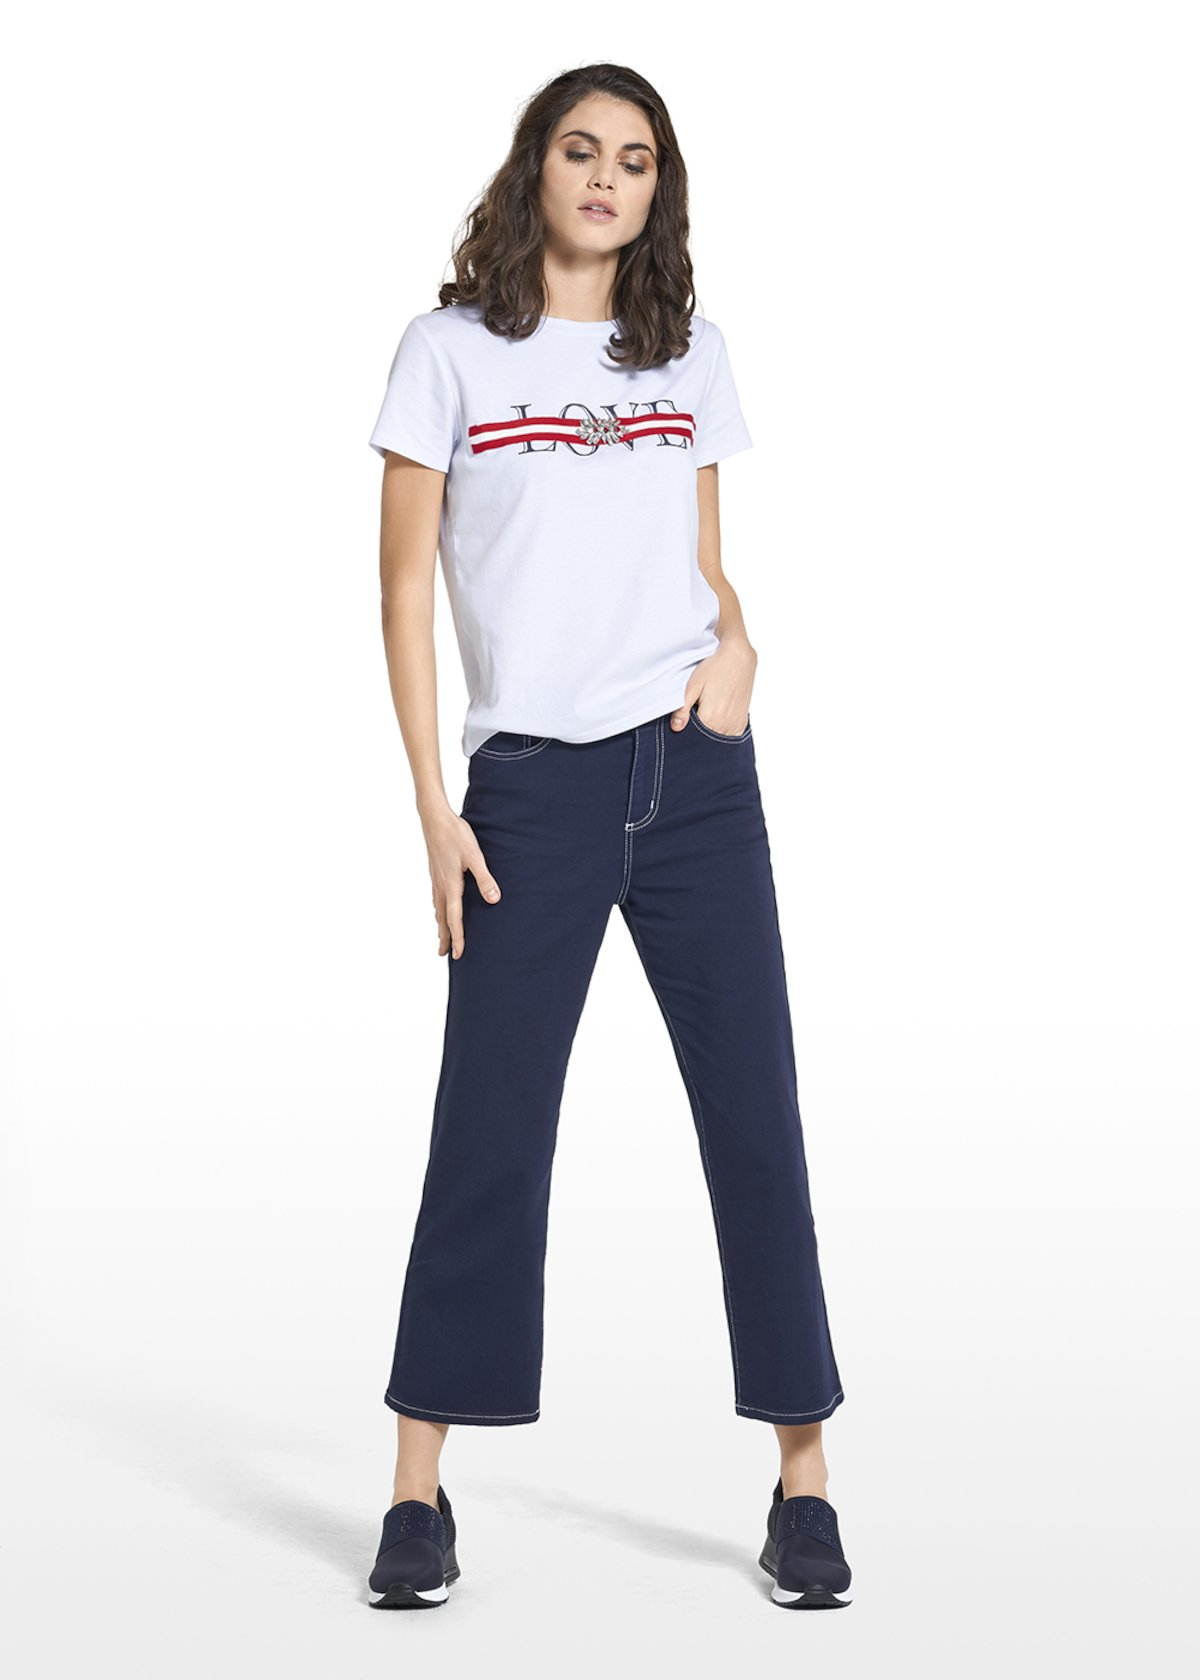 Sweater Sandy in jersey with print and embroidery on the front - White / Tulipano Fantasia - Woman